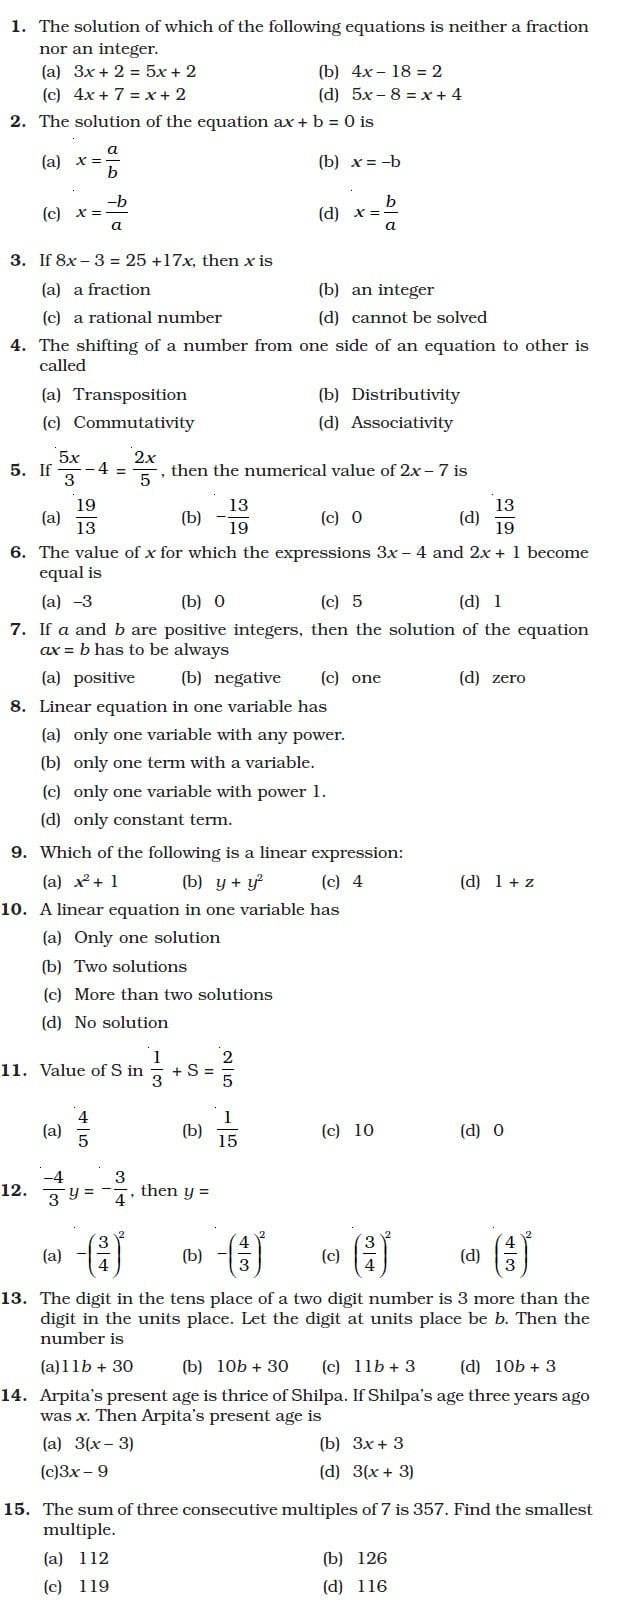 Class 8 Important Questions For Maths – Linear Equations In One Intended For Linear Equation In One Variable Worksheet